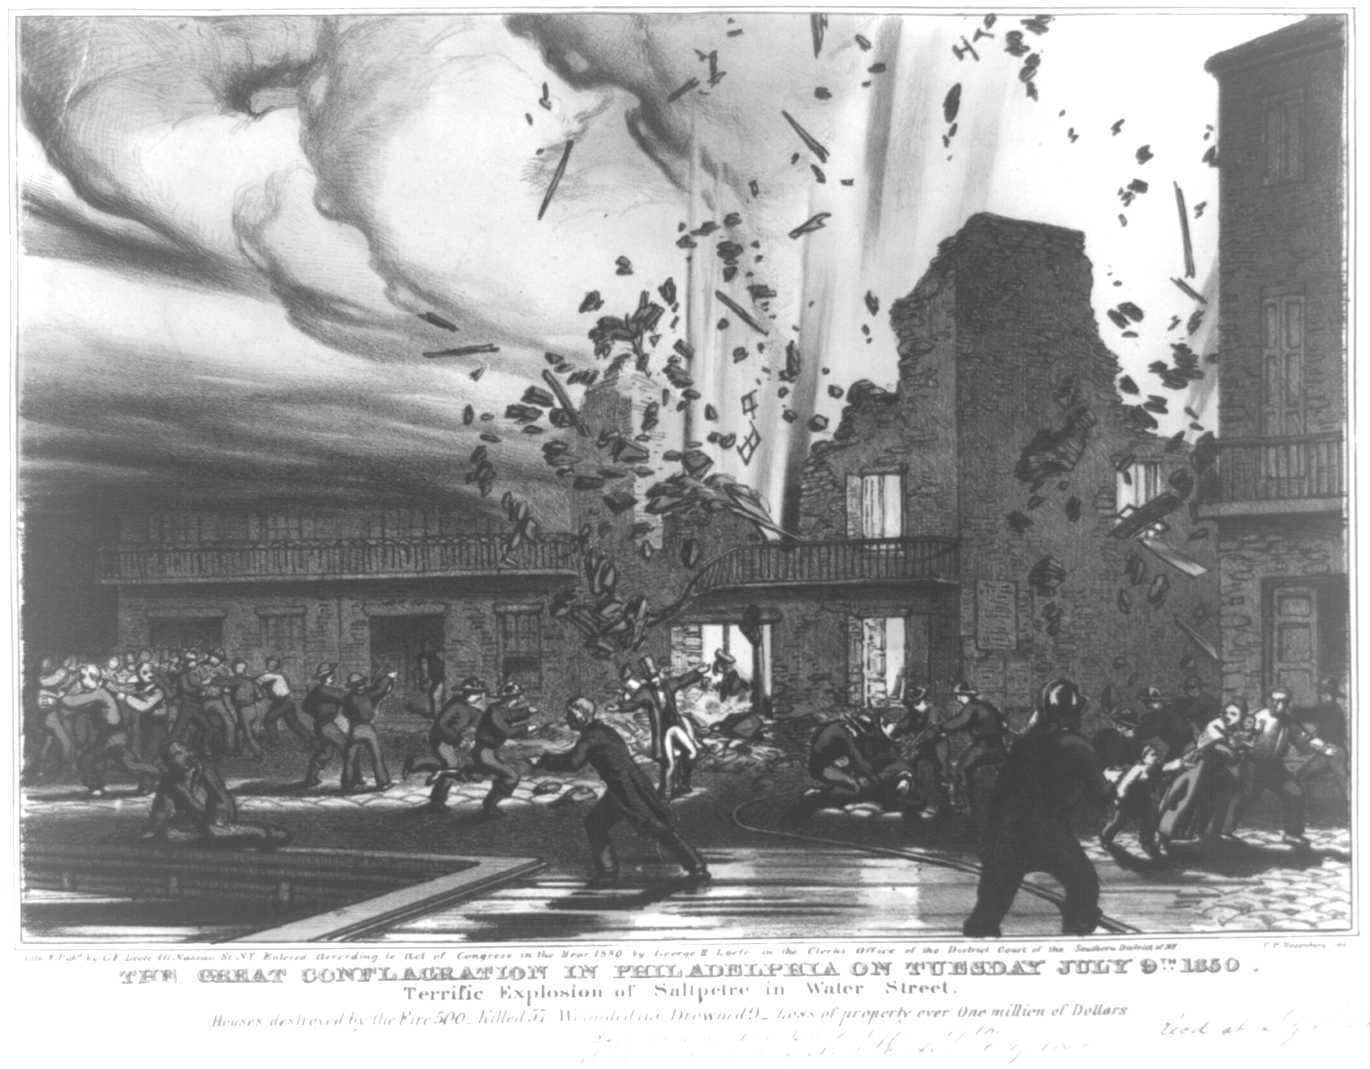 """""""The Great Conflagration in Philadelphia on Tuesday, July 9th, 1850.""""  Library of Congress."""